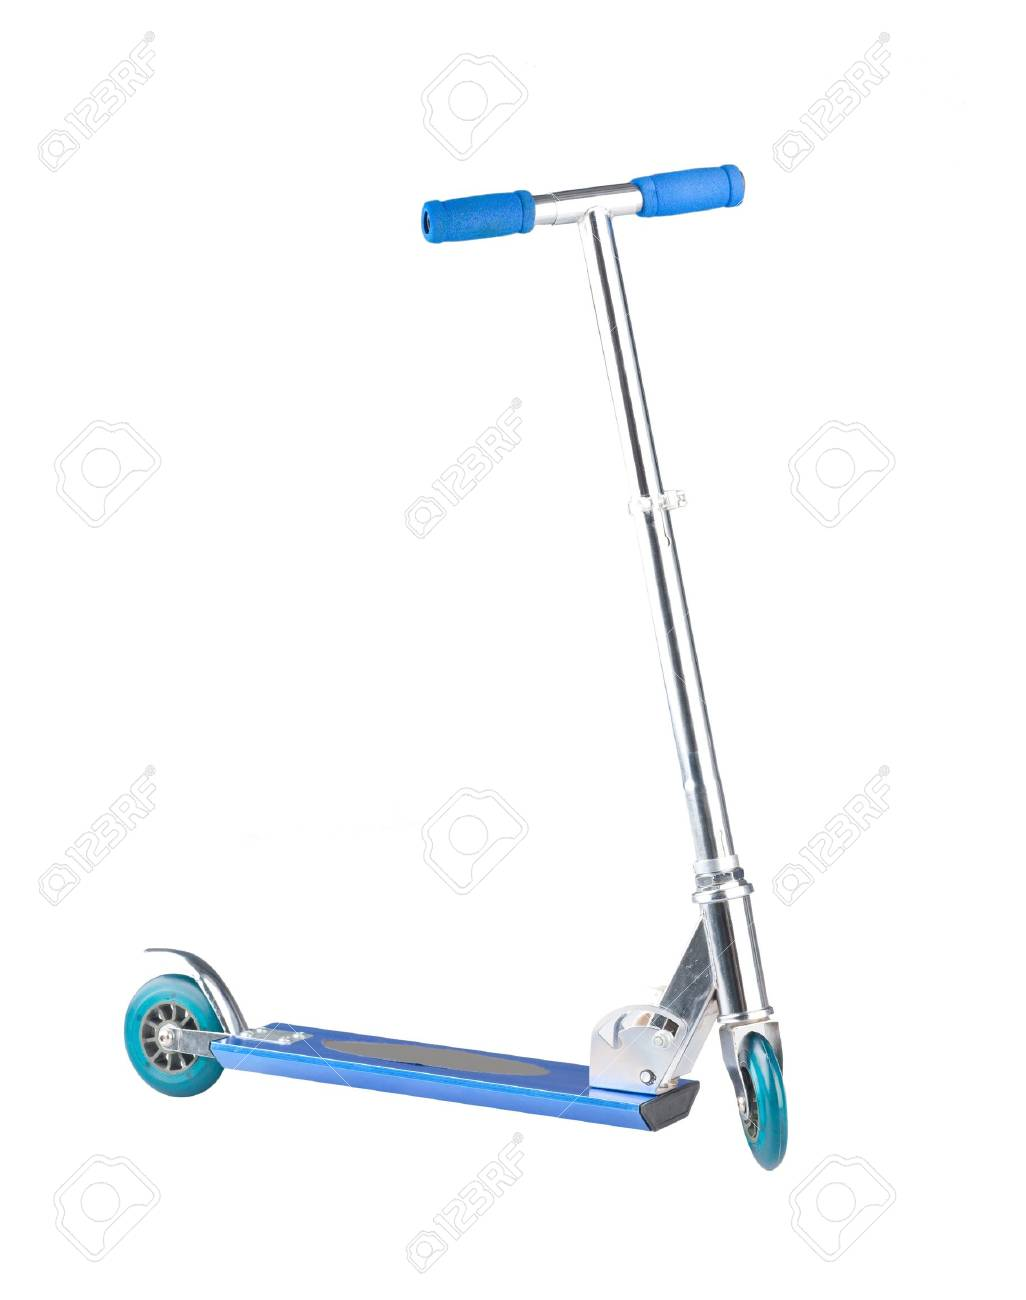 Scooter isolated on white Stock Photo - 17584003